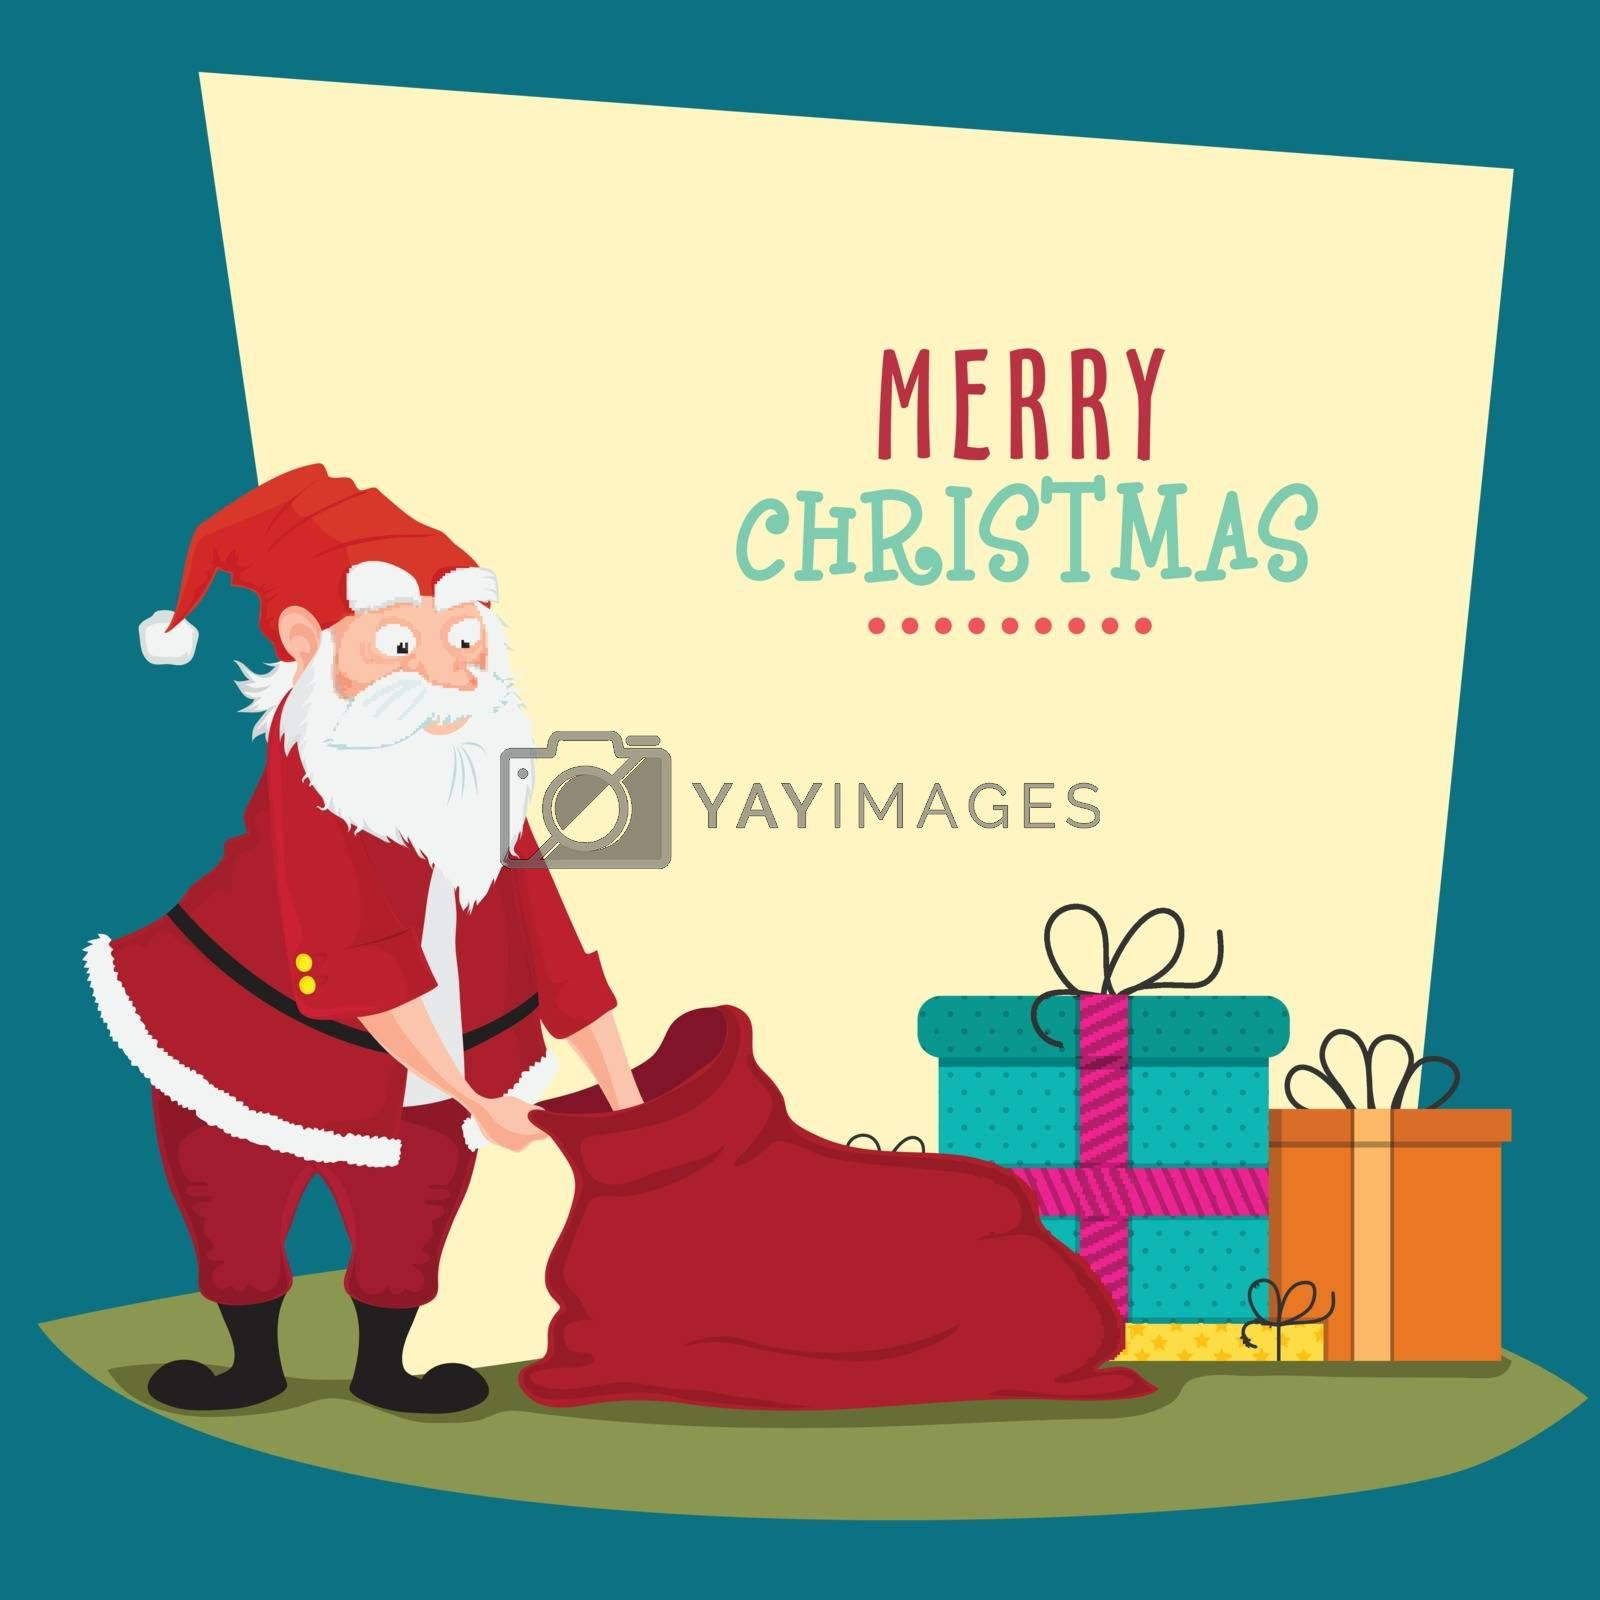 Santa Claus with Gifts Sack for Merry Christmas celebration.